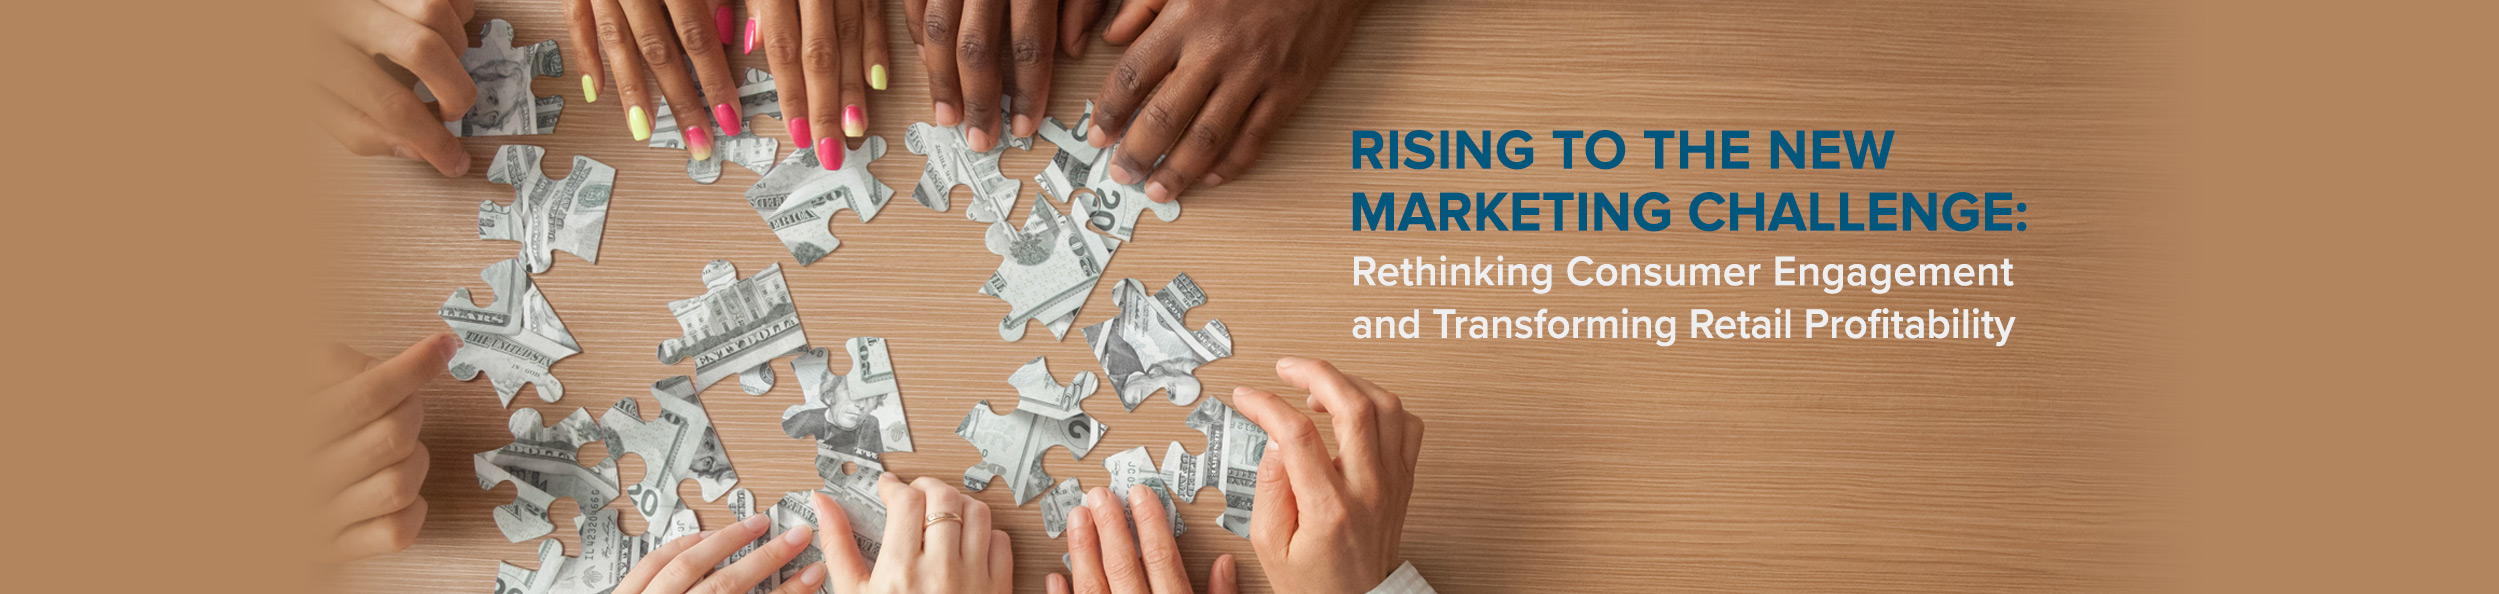 SPECIAL REPORT: Rise to the New Marketing Challenge Today